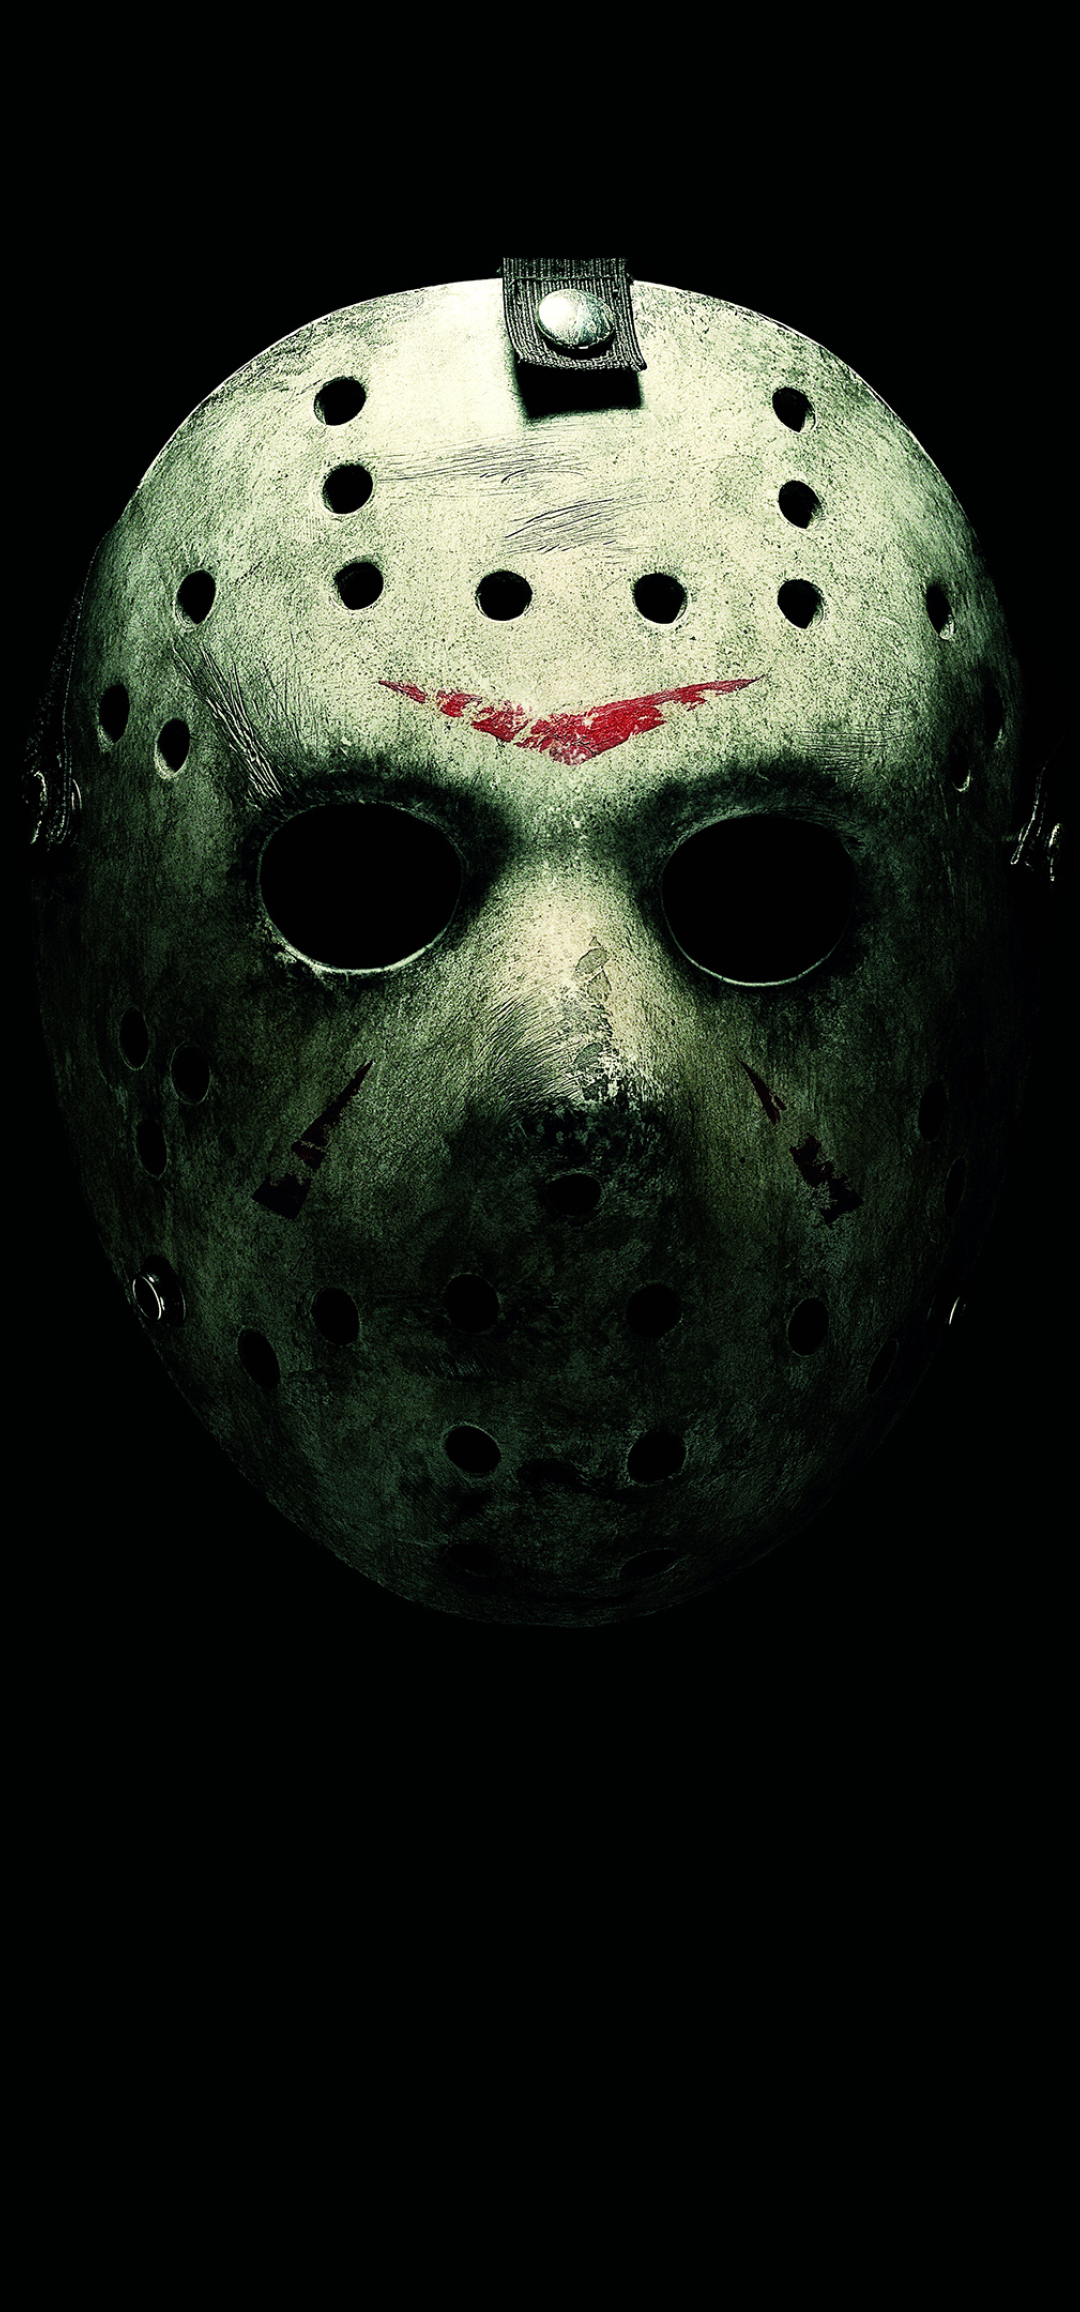 1080x2312 Friday The 13th 4K 1080x2312 Resolution Wallpaper, HD